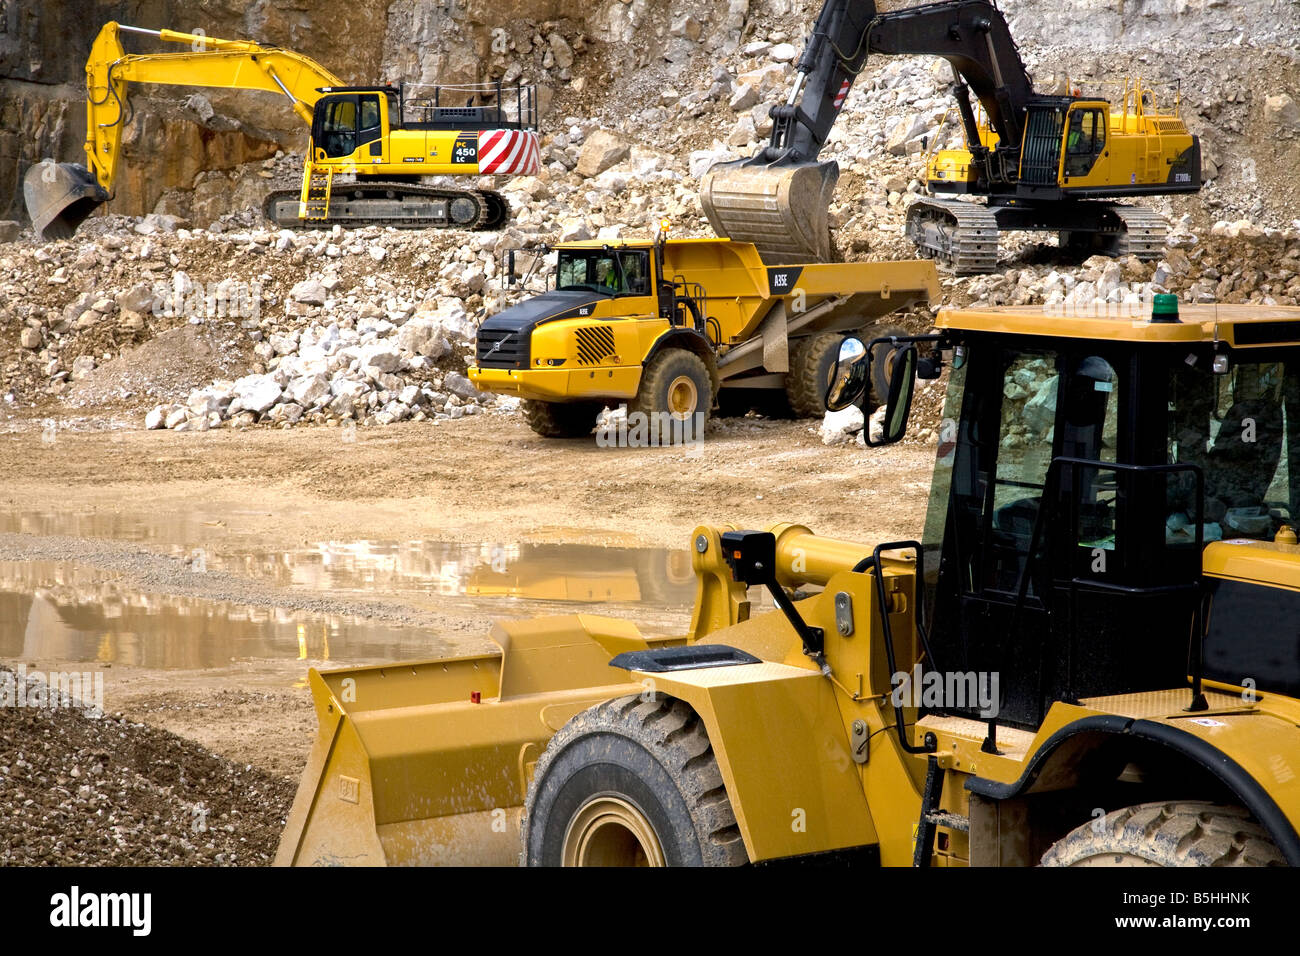 scene in a busy quarry showing diggers excavators dumpers and